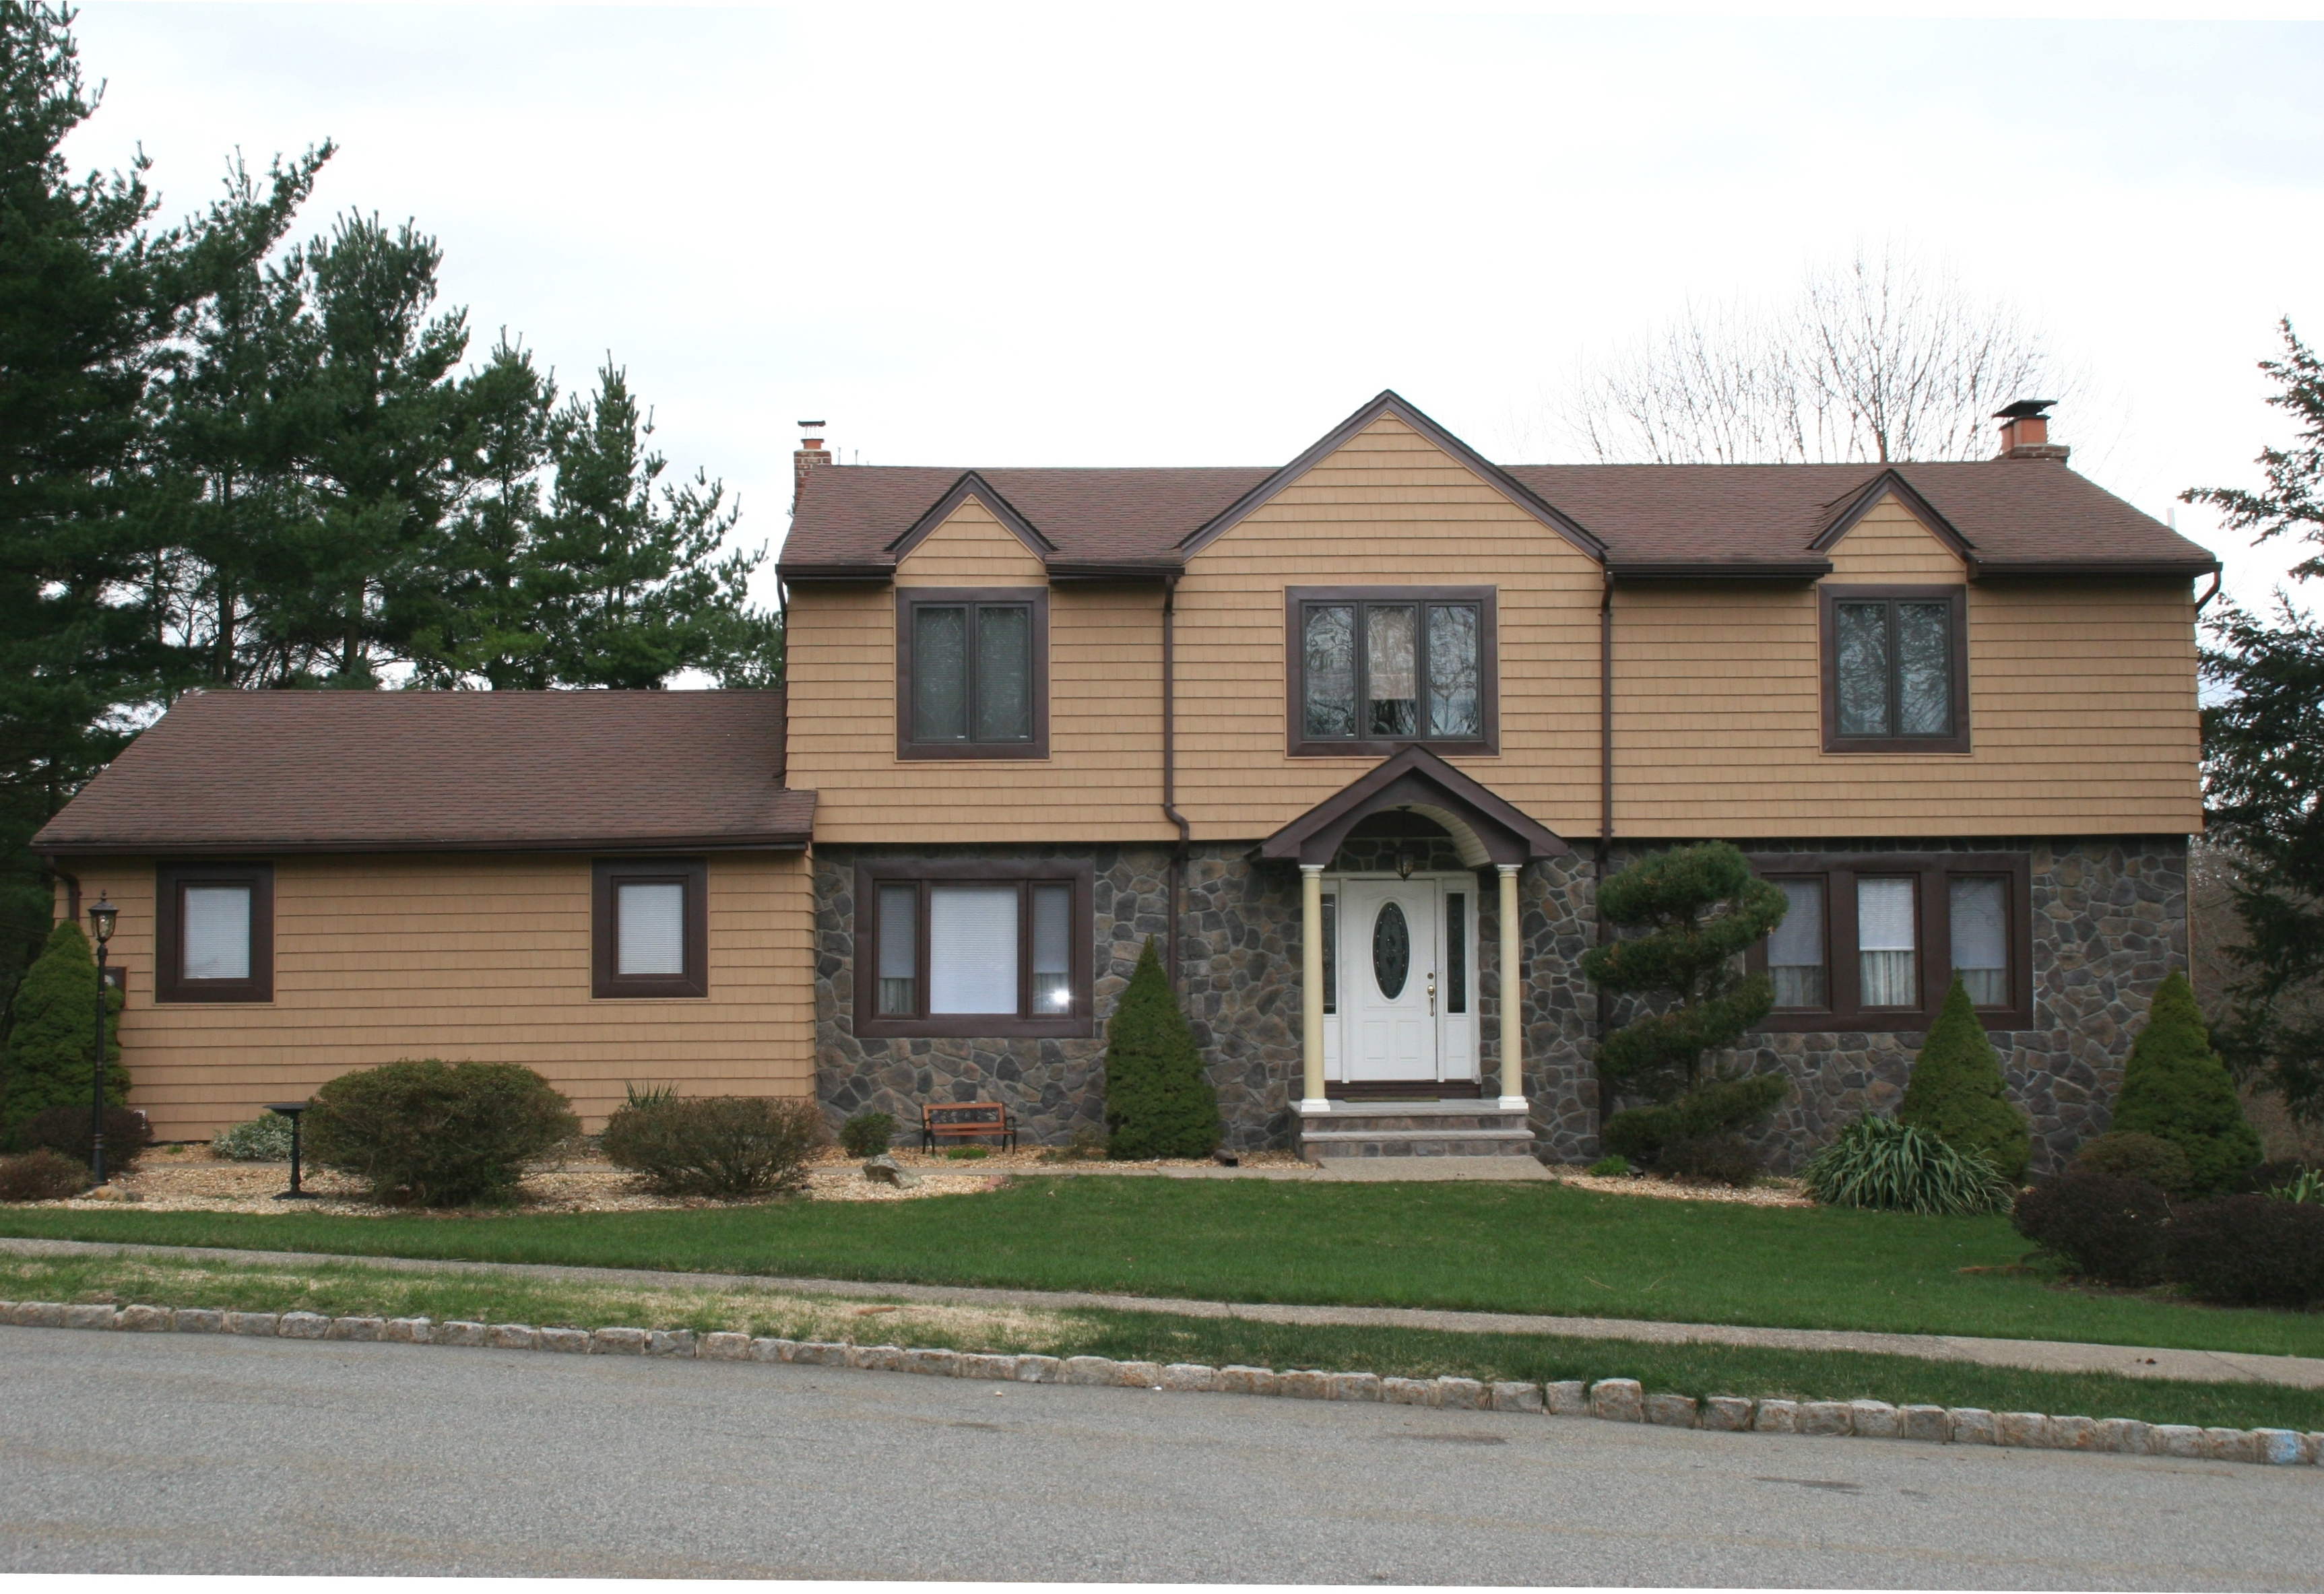 Vinyl siding american brickface stucco exteriors for Houses with stucco and siding